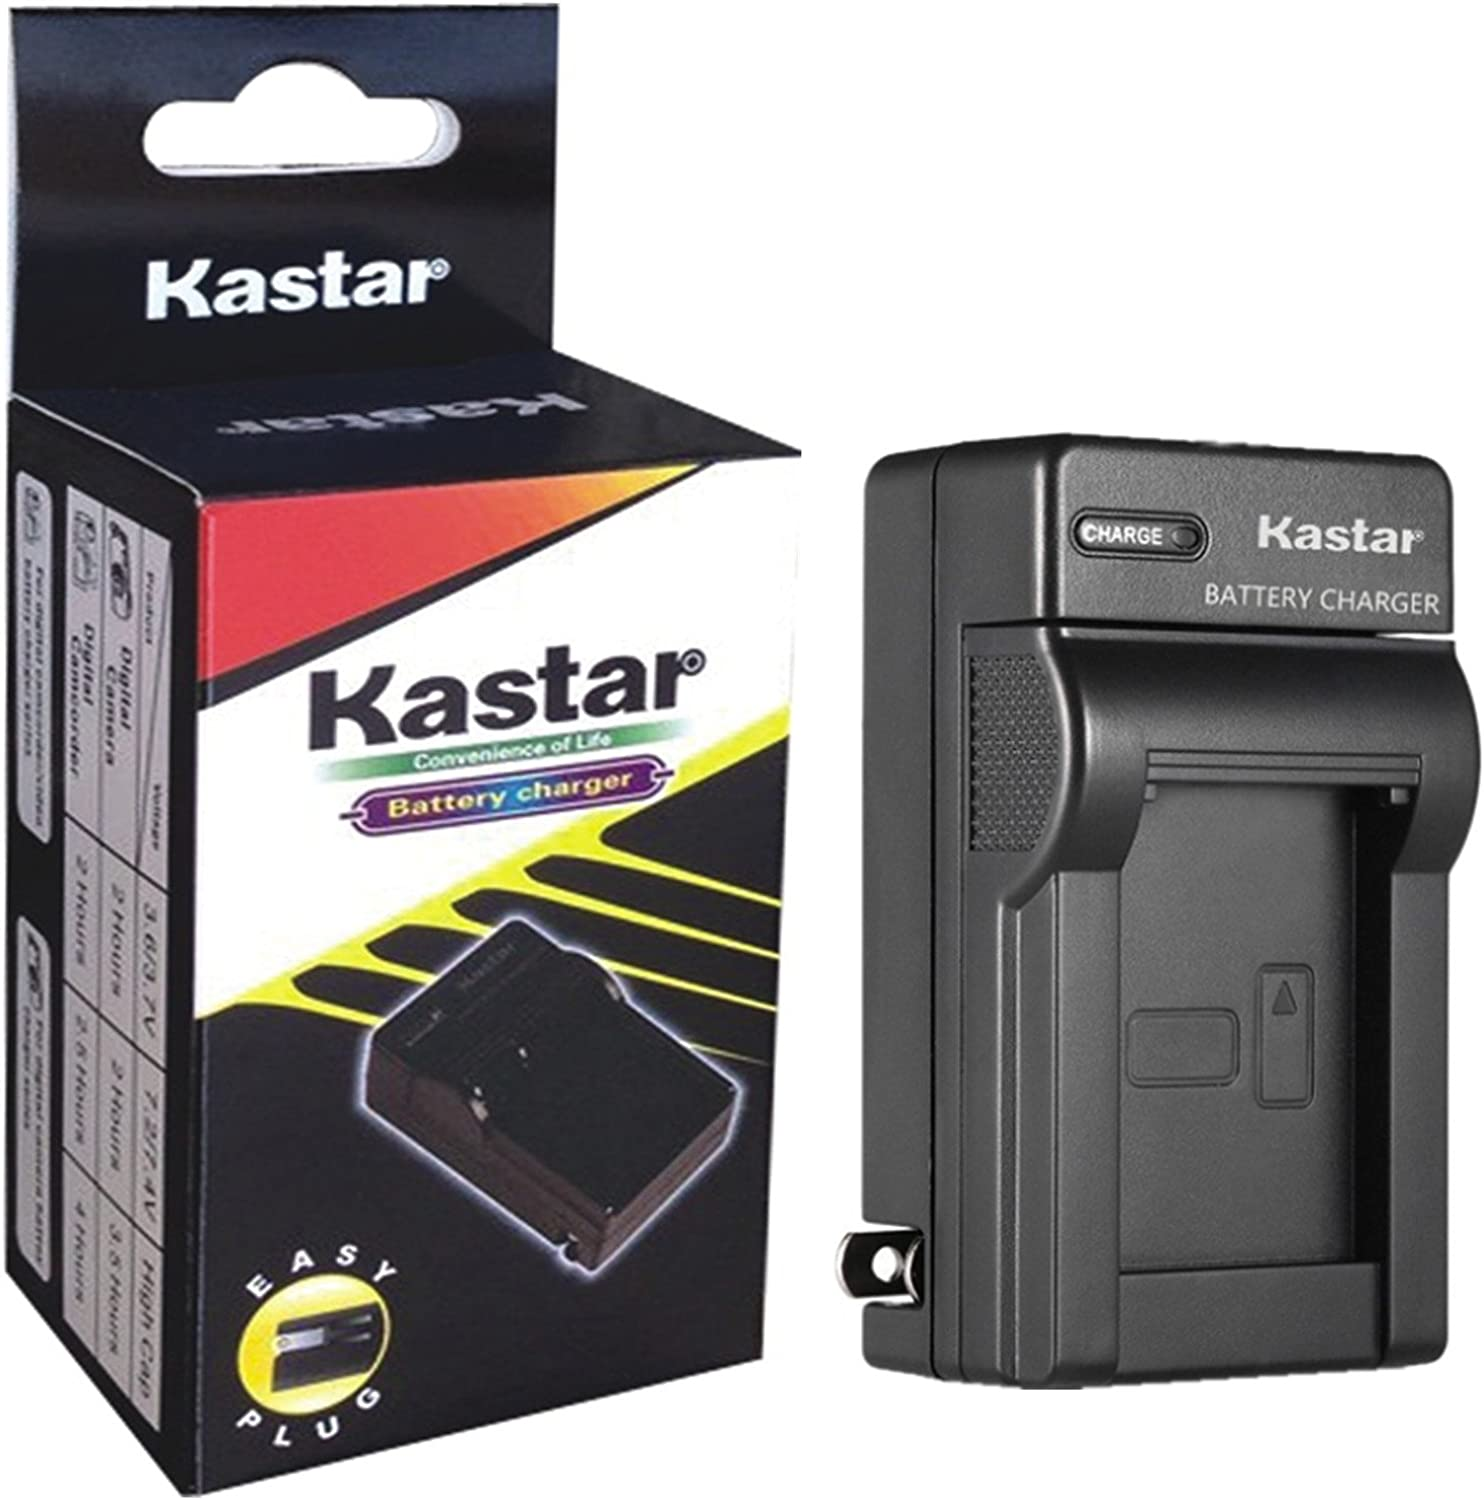 Kastar Charger forSony NP-FS11 NP-FS10 FS21 FS31 and CCD-CR1 CCD-CR5 DCR-PC1 DCR-PC2 DCR-PC3 DCR-PC4 DCR-PC5 DCR-TRV1VE Cyber-Shot DSC-F505 DSC-F505V DSC-F55 DSC-F55V DSC-P1 DSC-P20 DSC-P30 DSC-P50